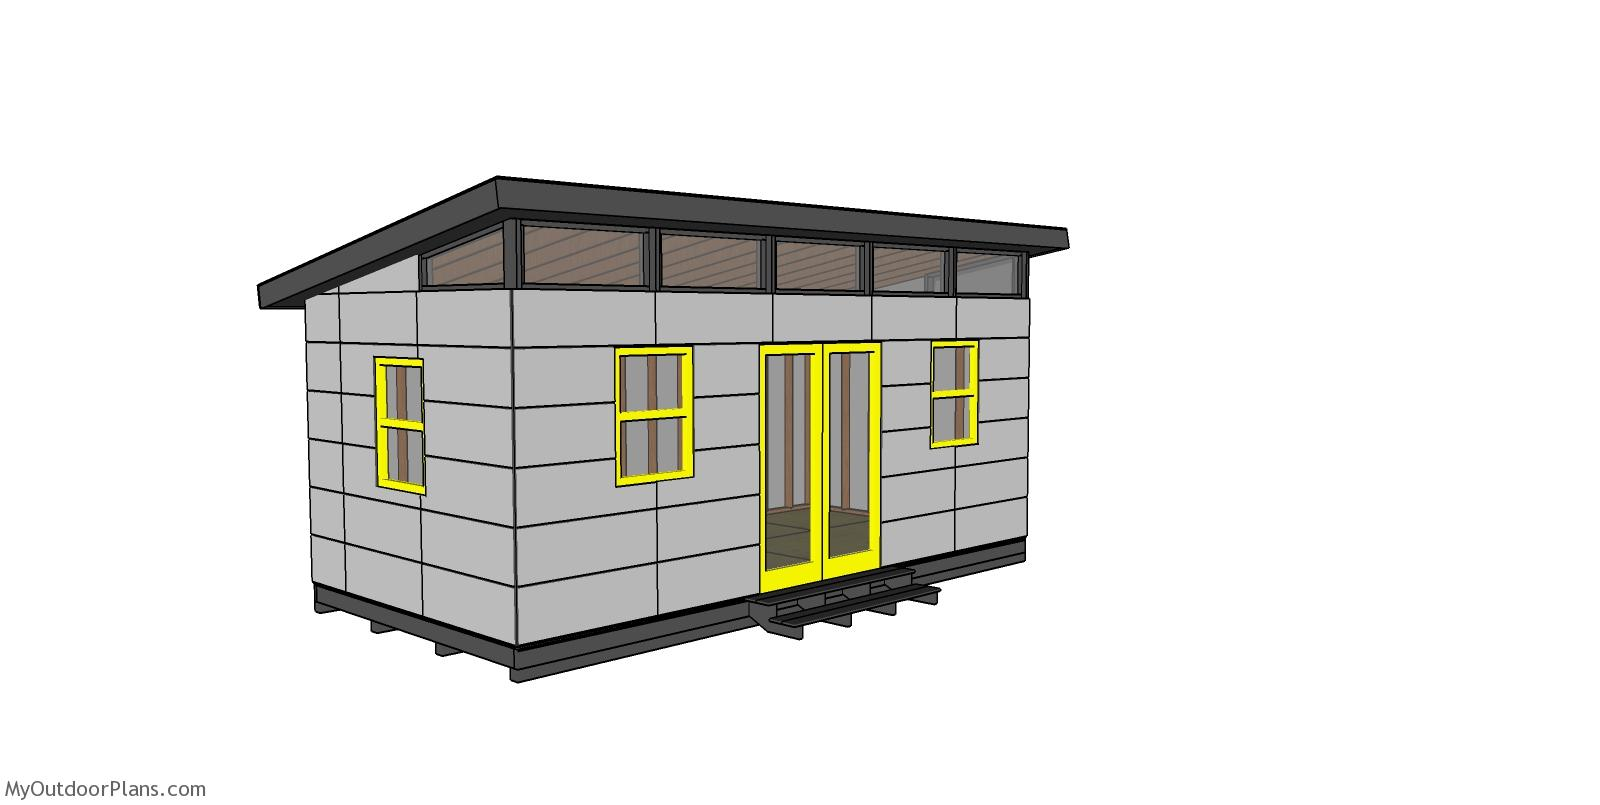 10x20 Modern Office Shed Plans - Free PDF Download